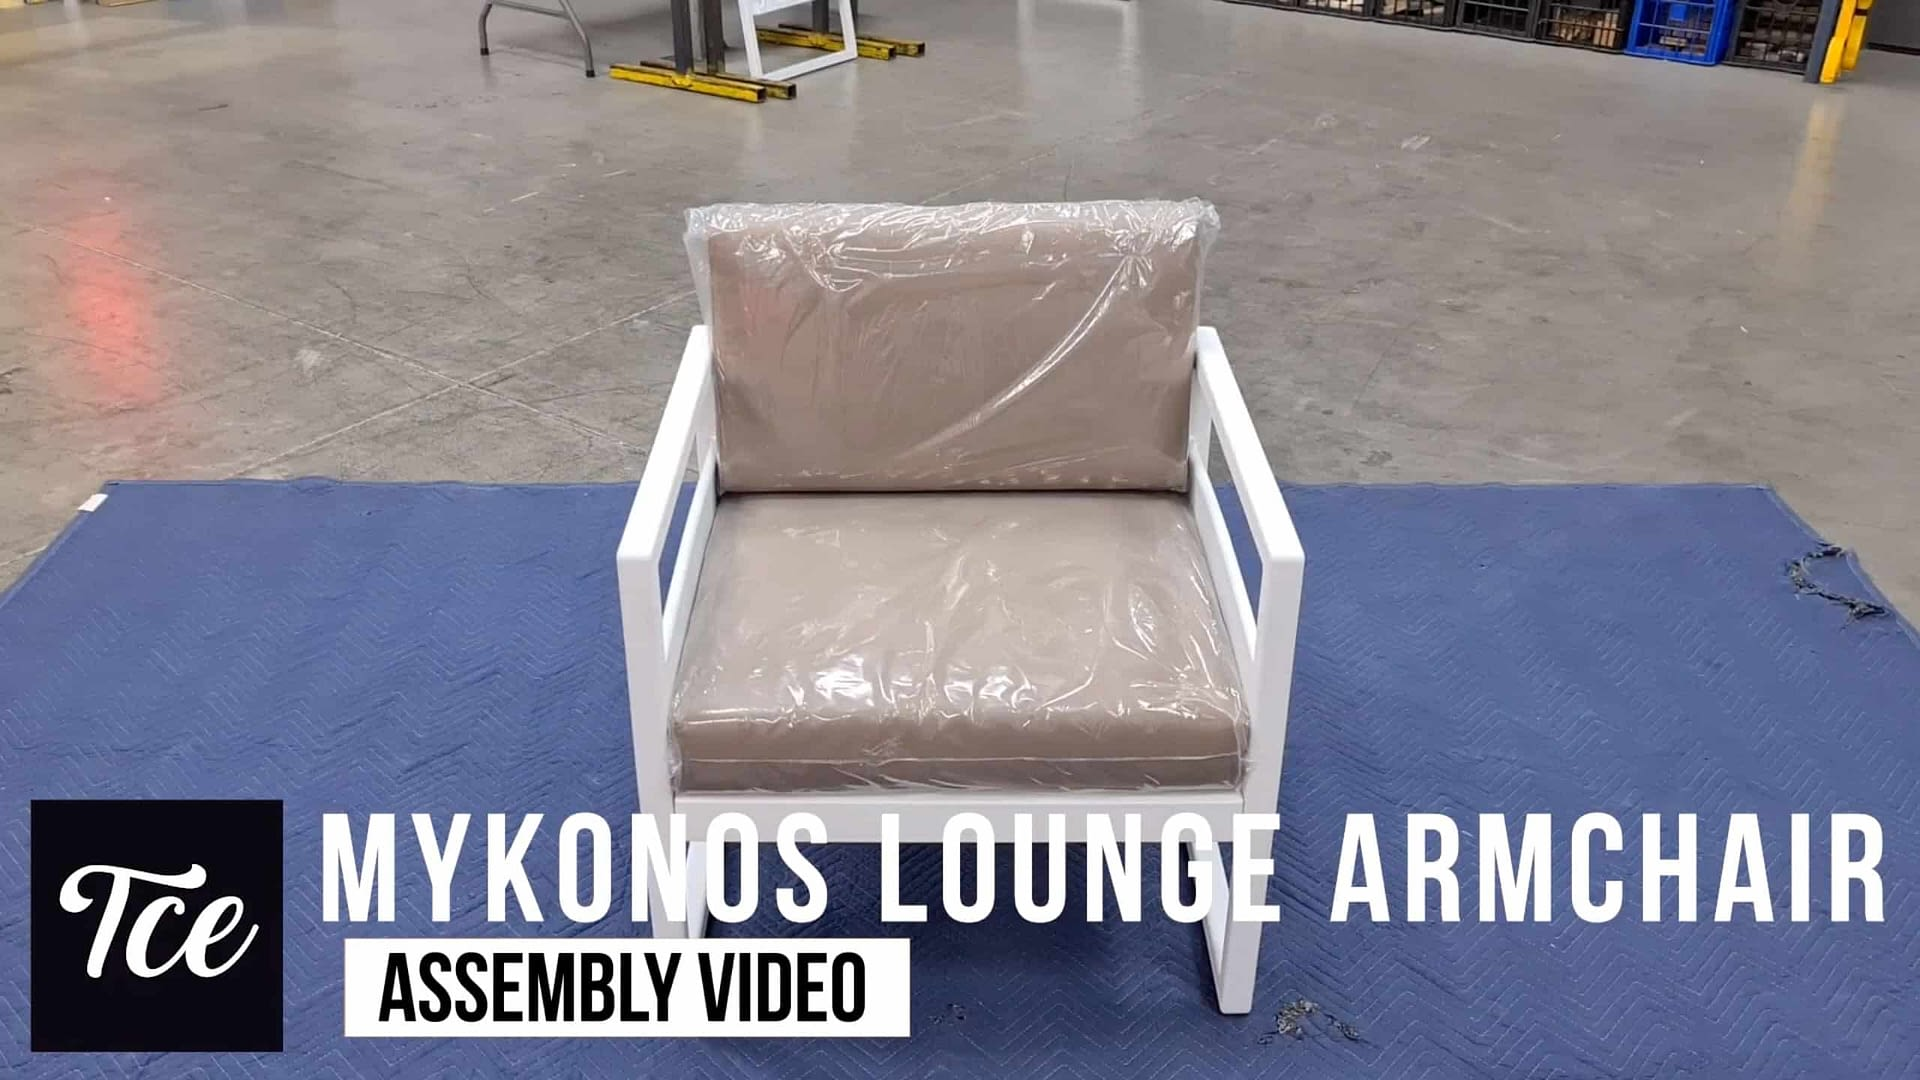 Assembly for the Mykonos Lounge Armchair